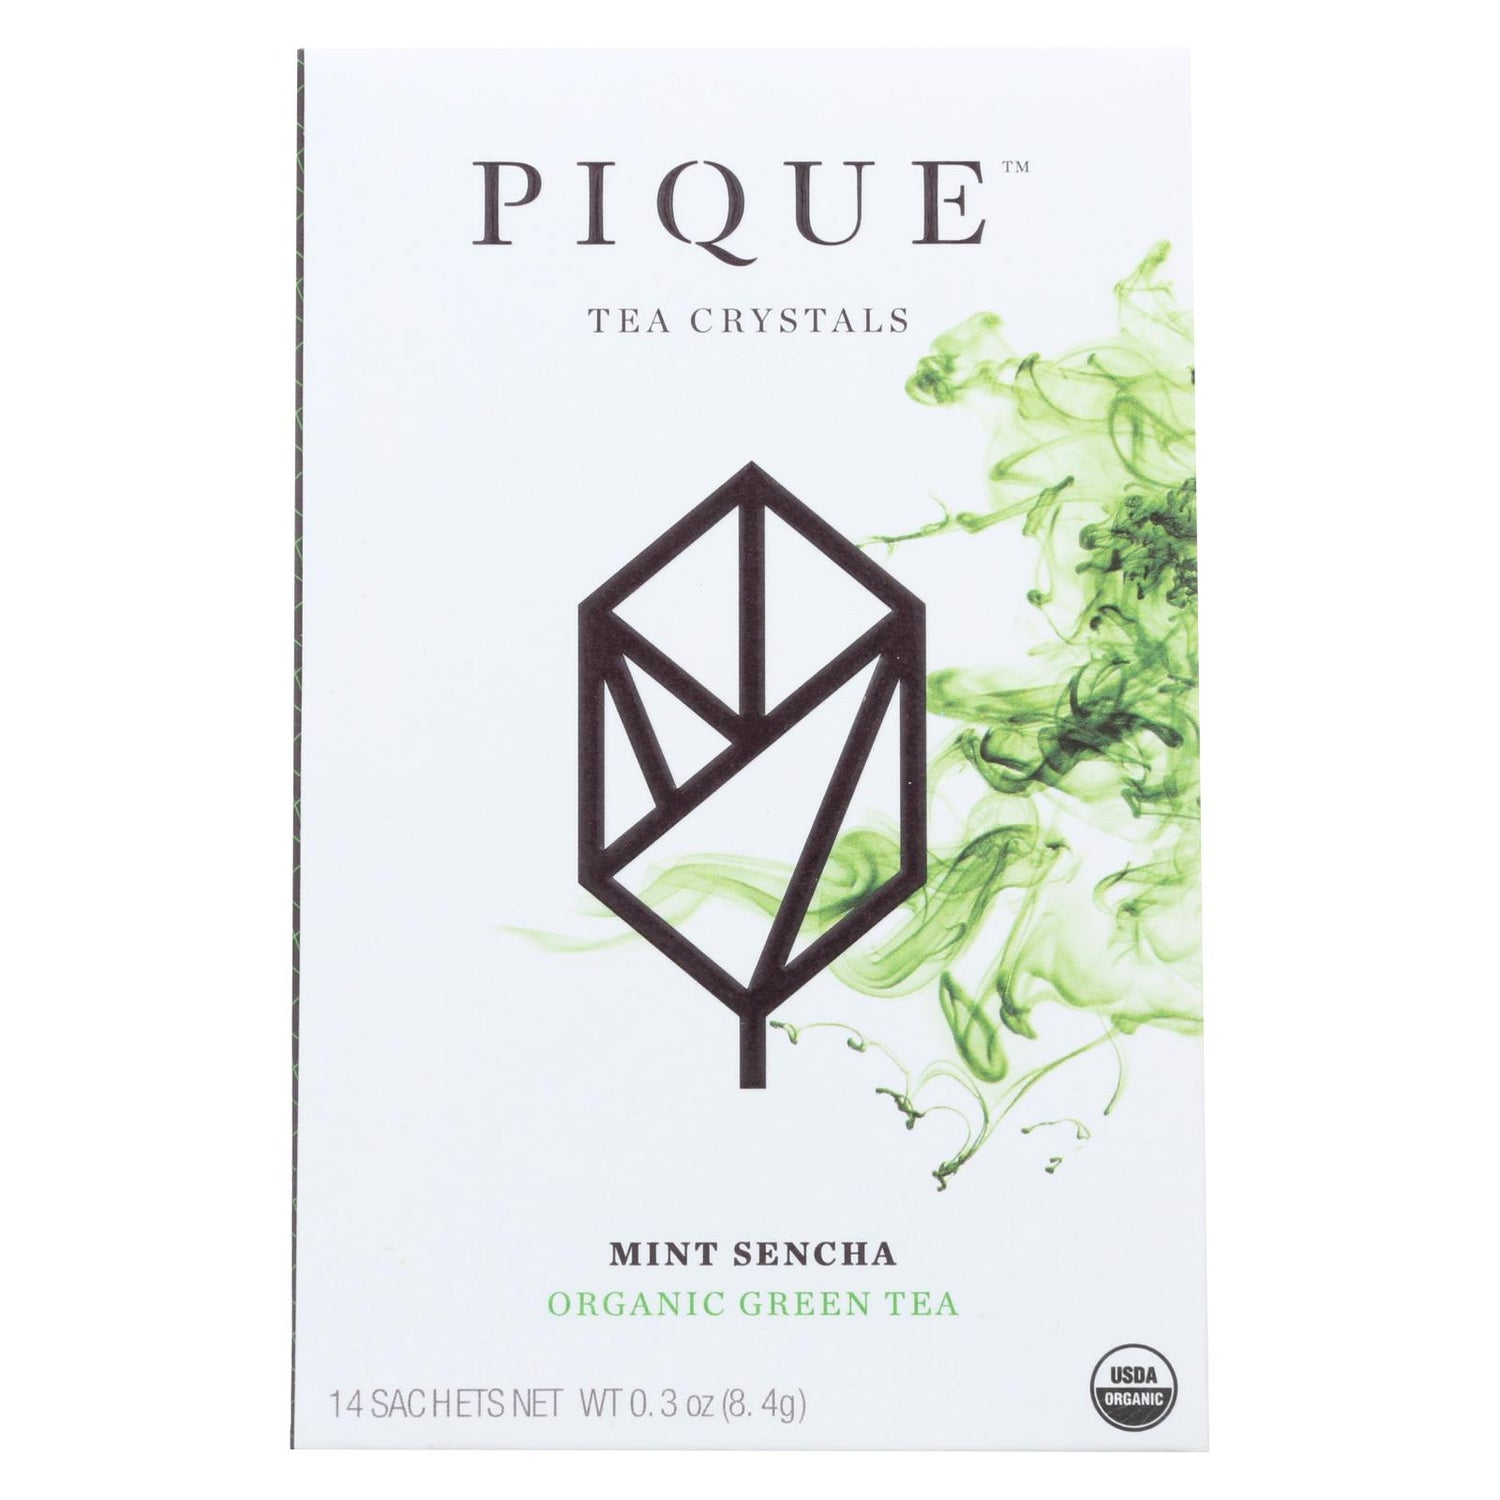 Pique Tea Crystl - Organic - Mint Sencha - Case Of 6 - 14 Count